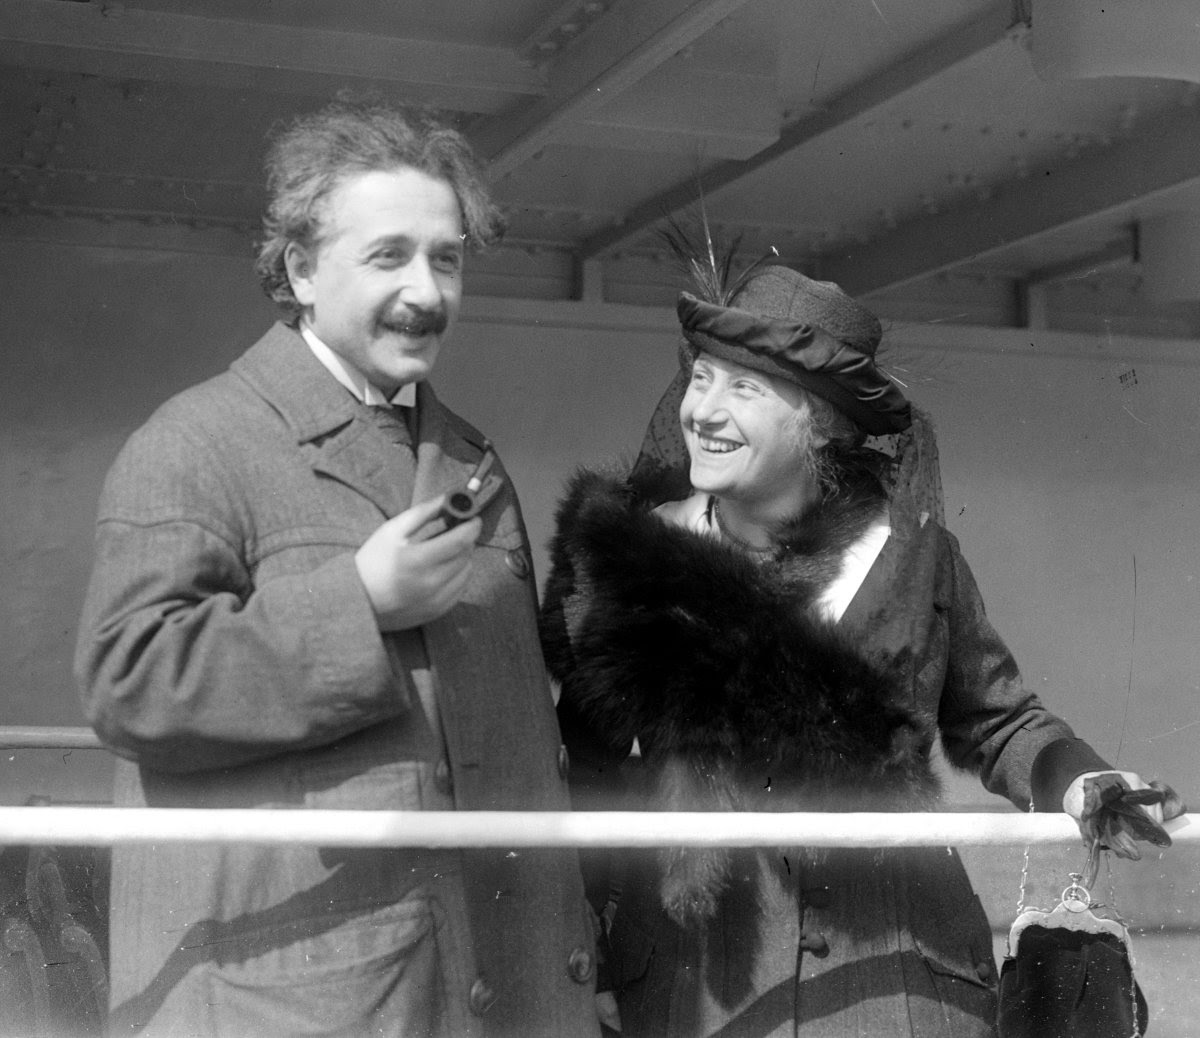 Photograph of Albert Einstein with his wife Elsa.  Einstein is pictured holding a pipe.  Both are wearing long coats.